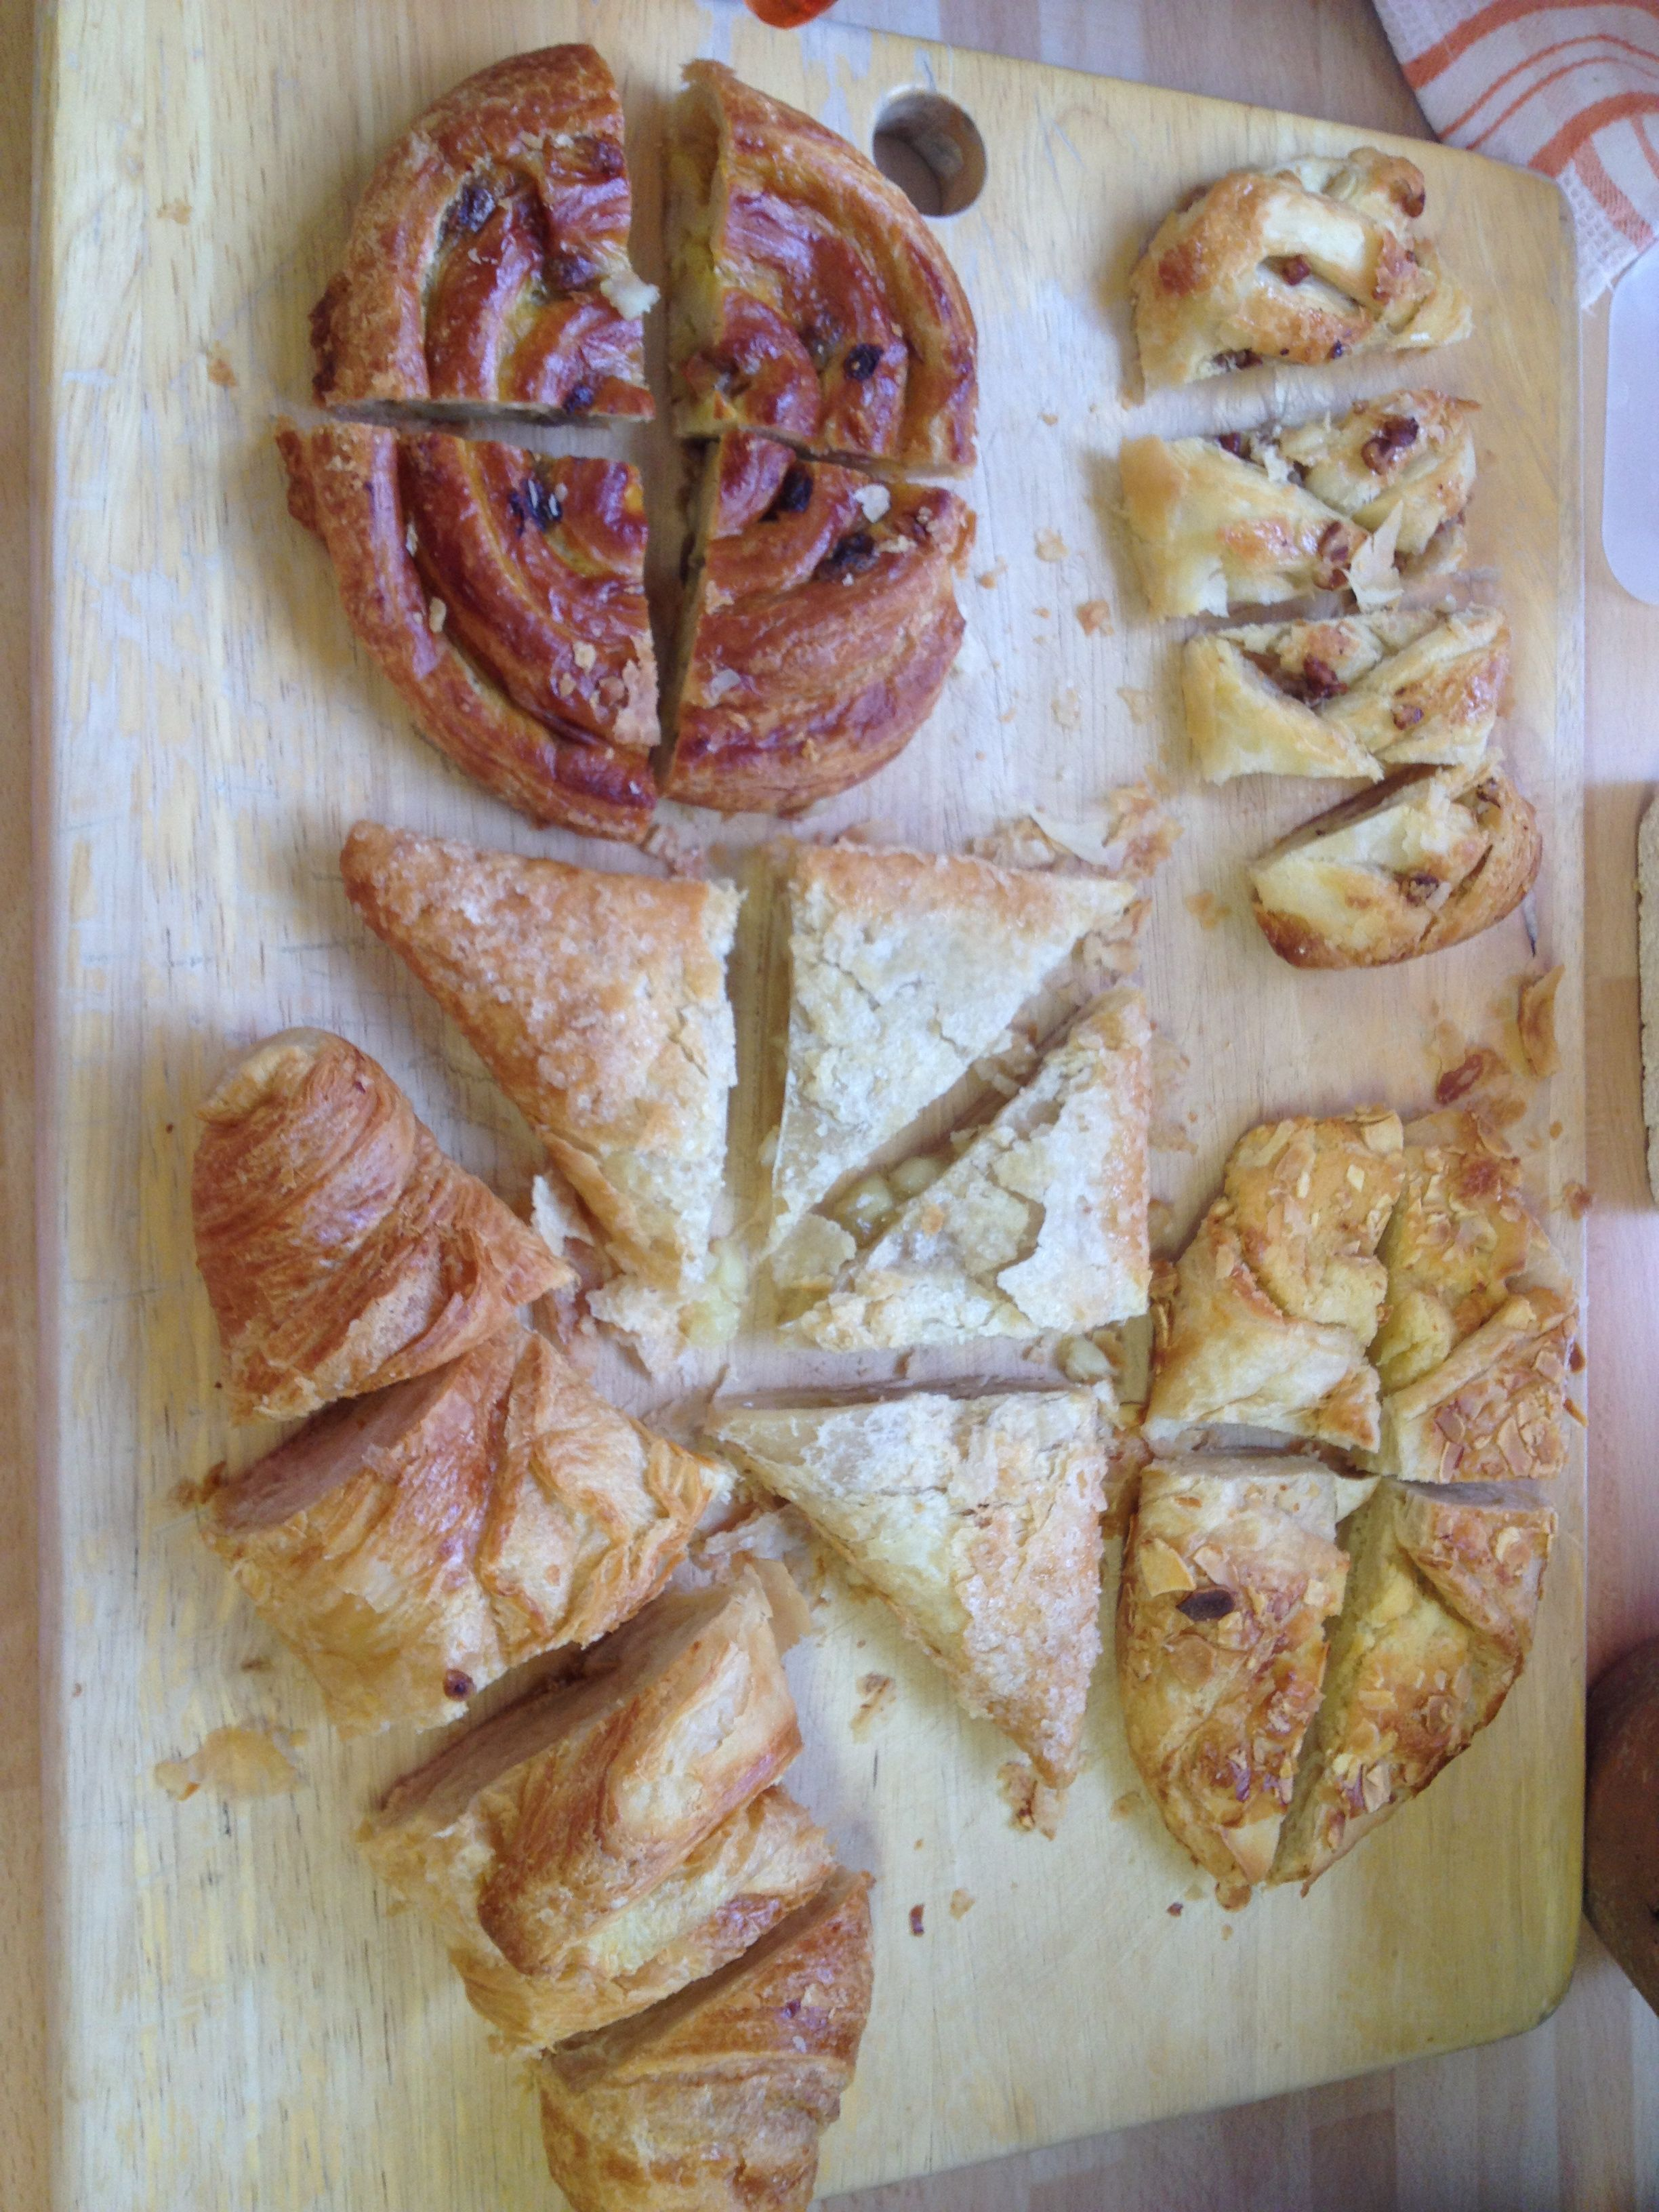 Pastry feast!